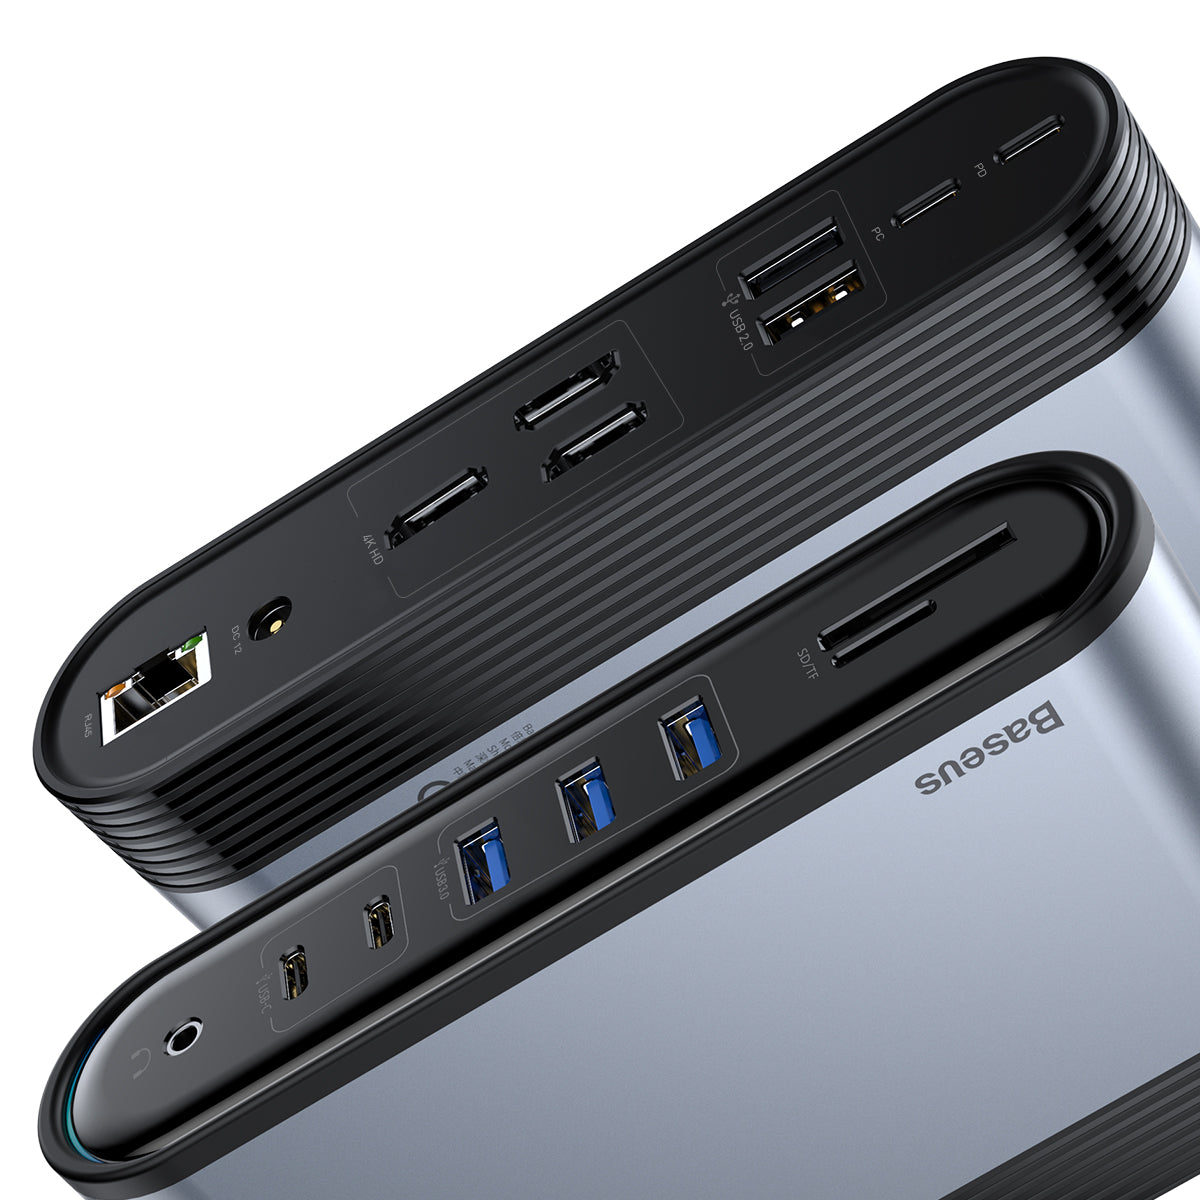 Baseus 17 In 1 USB-C Triple Display Hub Docking Station Adapter with 3 * USB 3.0/2 * USB 2.0/100W Type-C PD/2 * Type-C/3 * 4K HD Display Video Outputs/RJ45 Internet Port/3.5mm Audio Jack/DC 12V Power Supply/Memory Card Readers